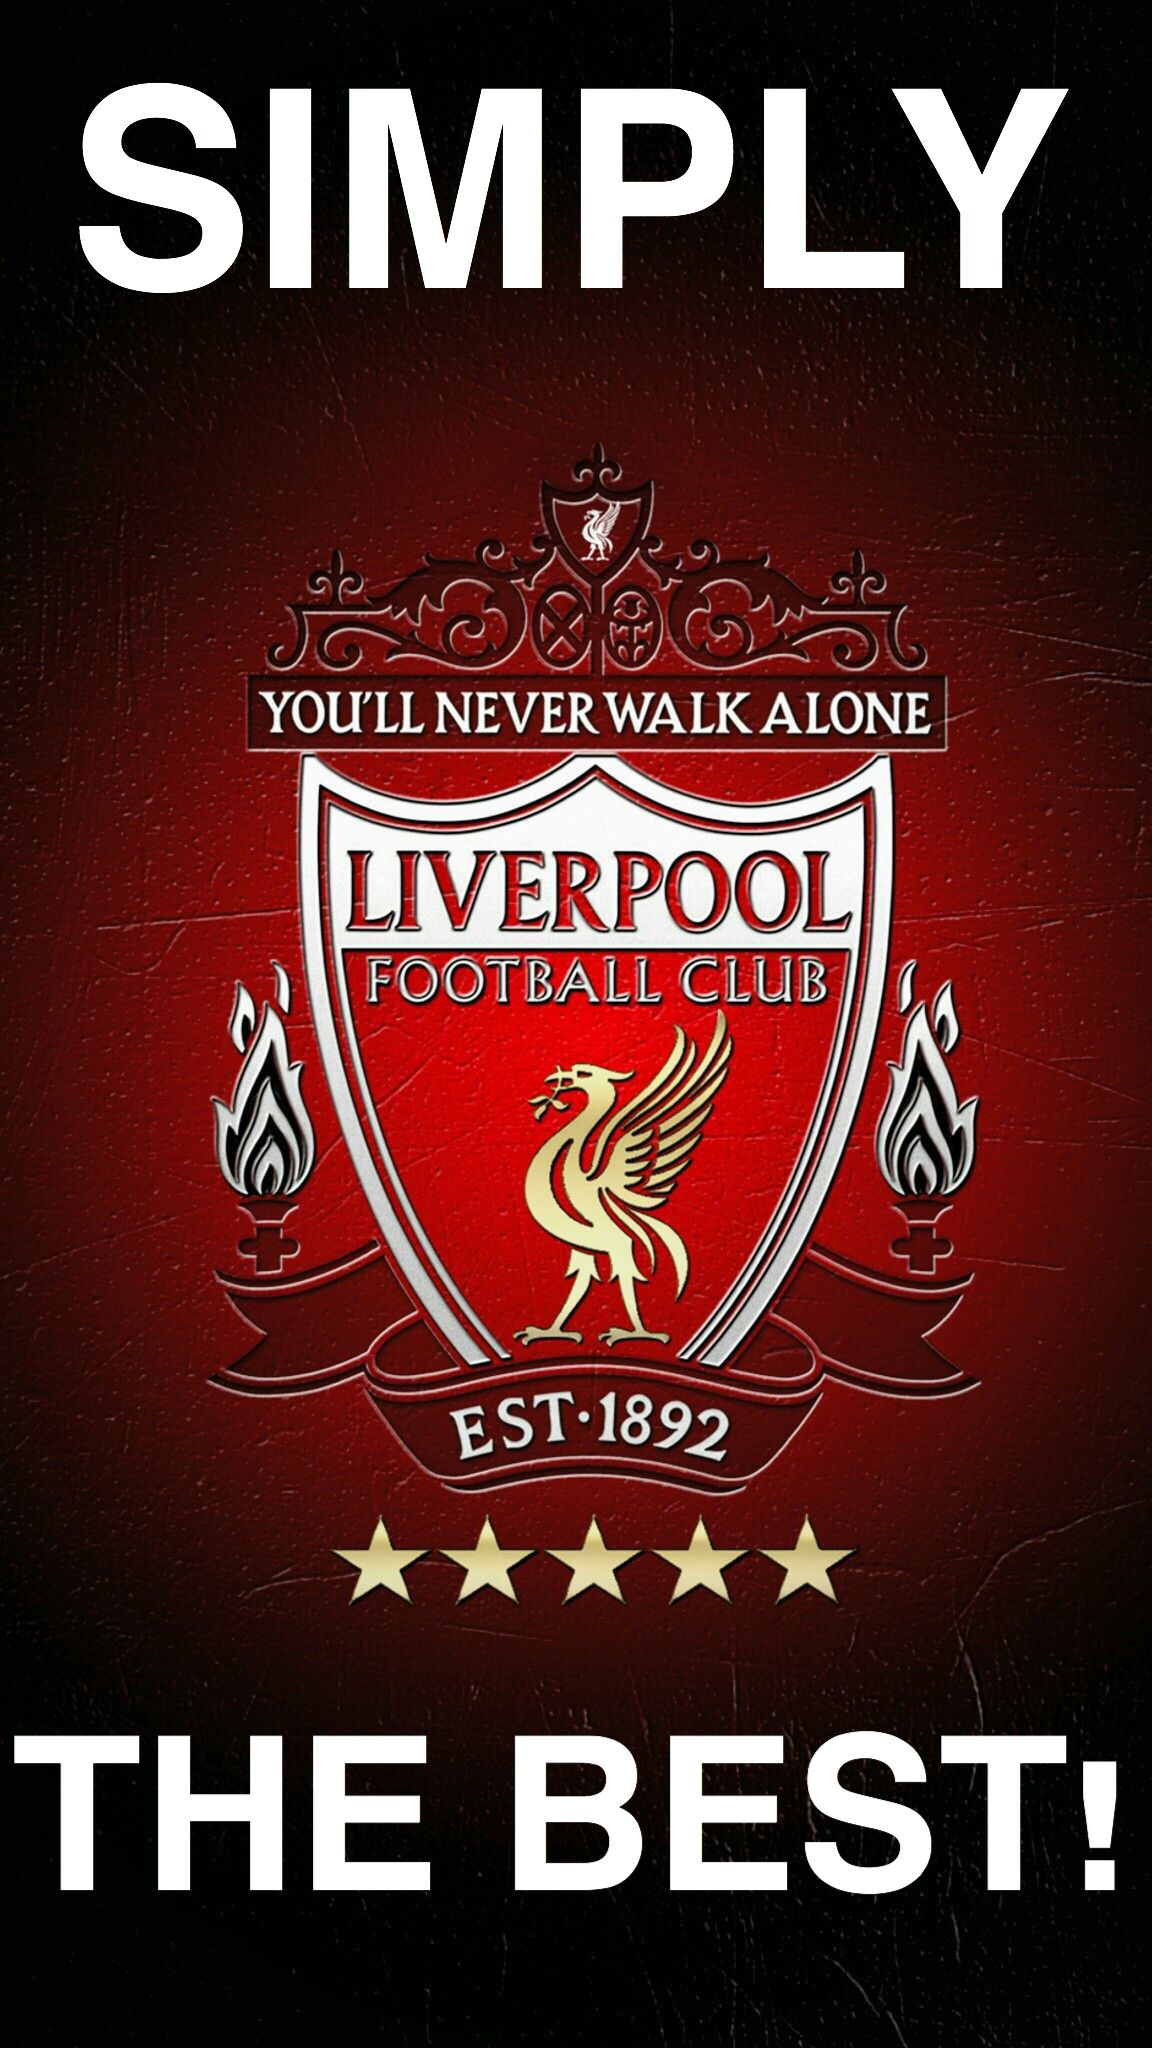 Pin By Shane Johnson On Images Of Lfc Liverpool Football Club Liverpool Football Liverpool Anfield